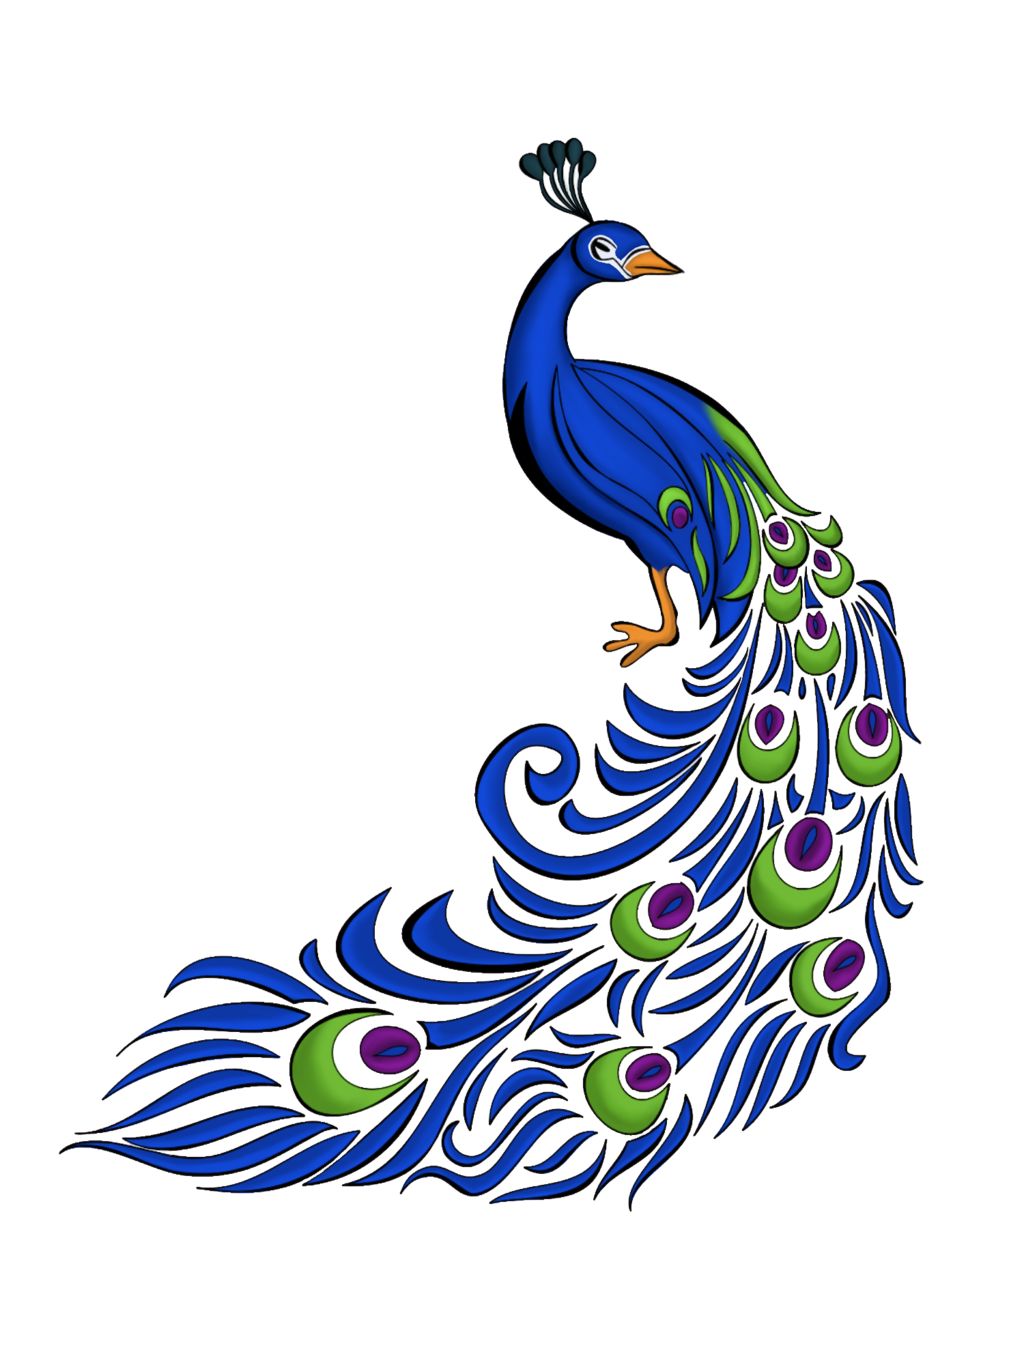 collection of images. Clipart designs peacock